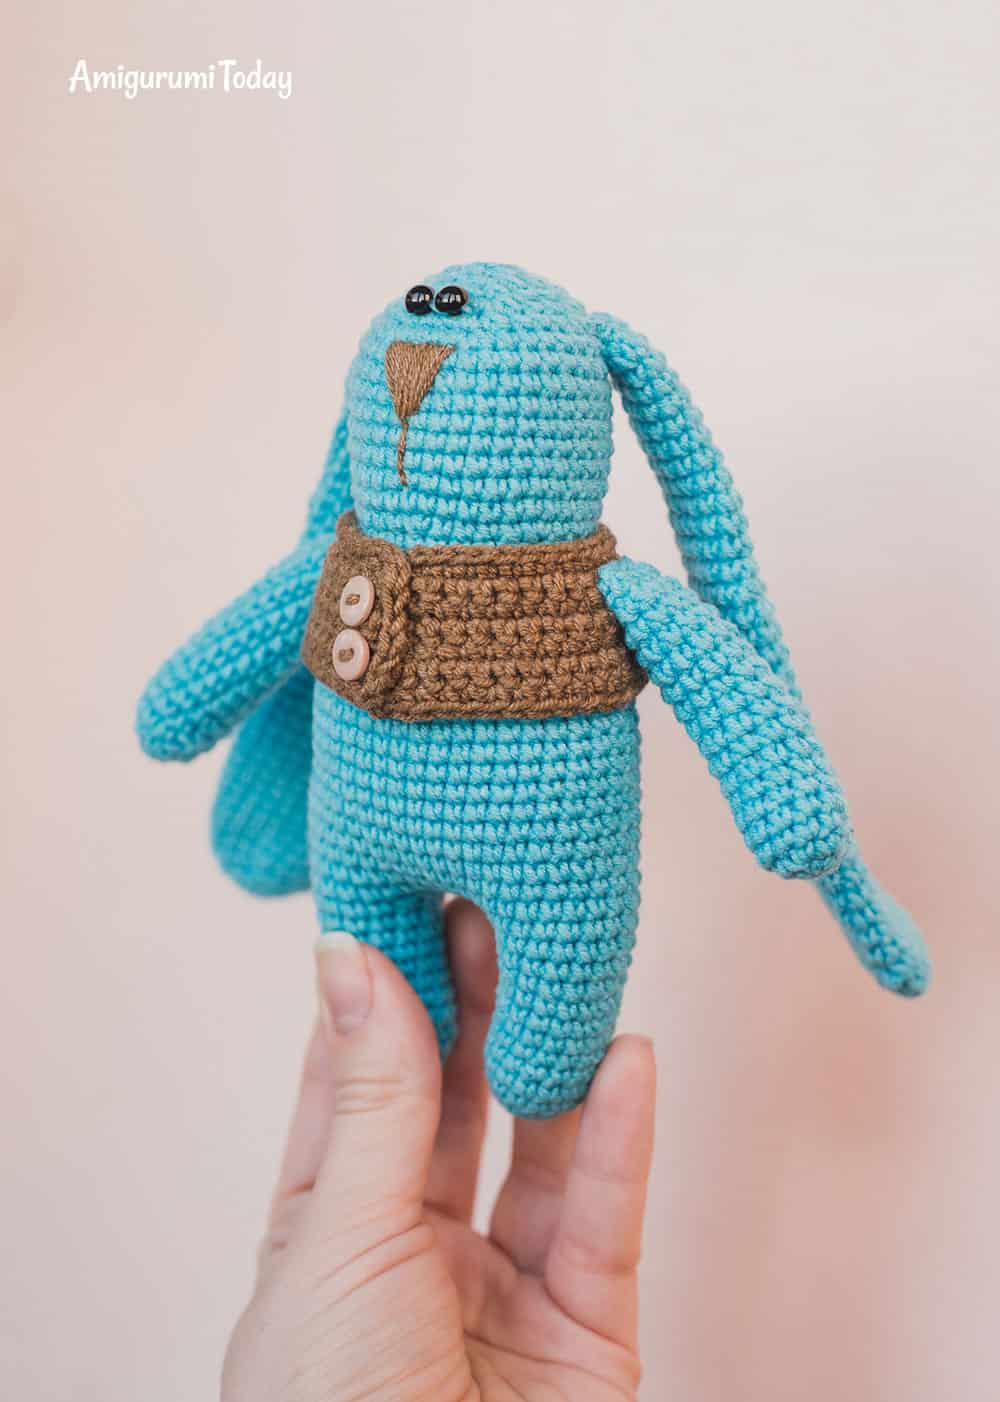 Amigurumi bunny in vest - Pattern on Amigurumi Today